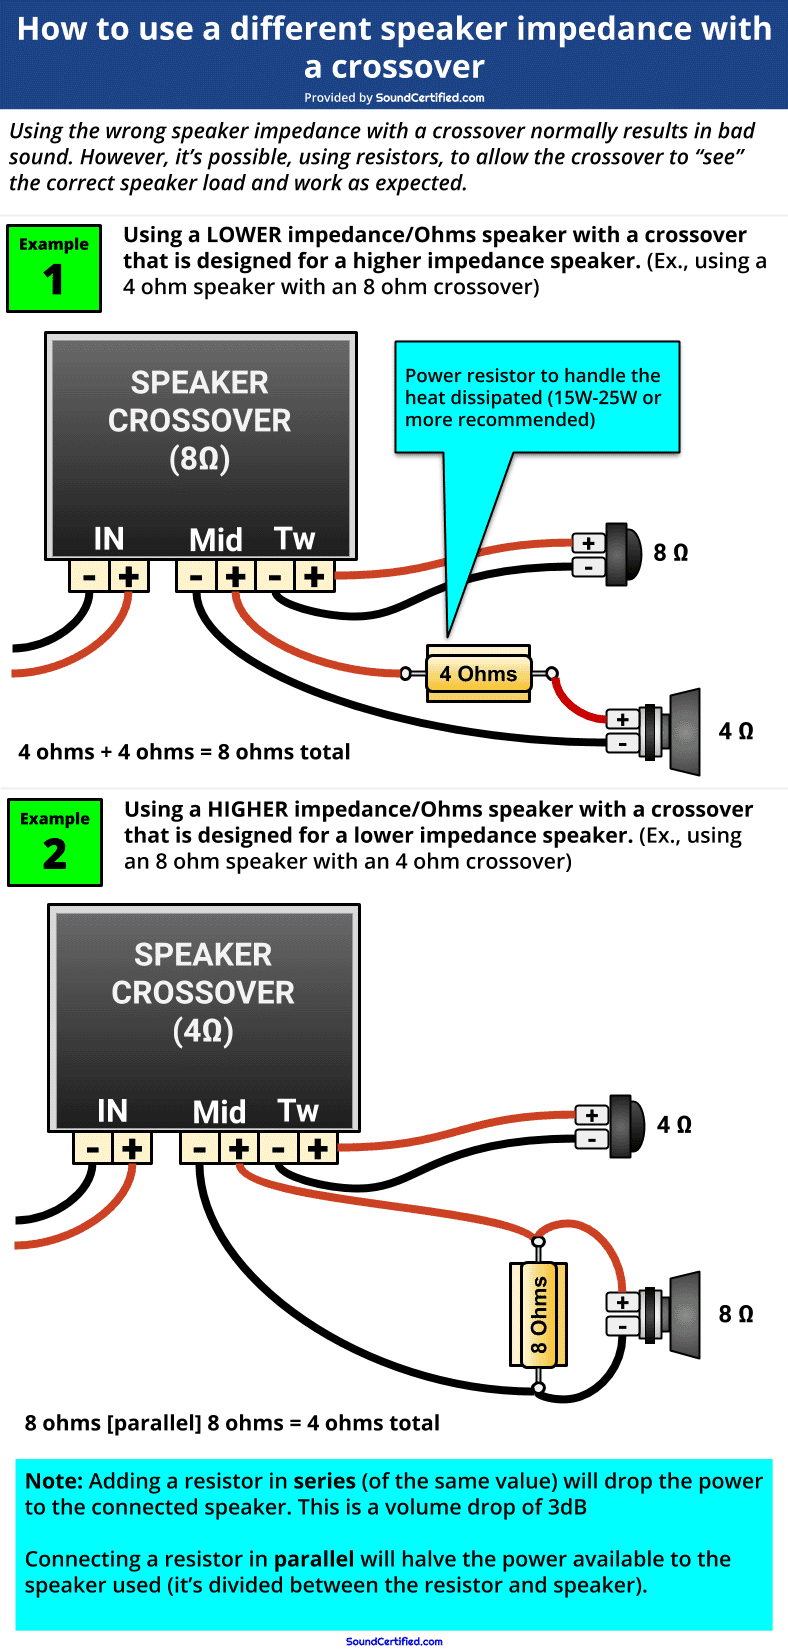 How to use a different speaker impedance with crossover diagram